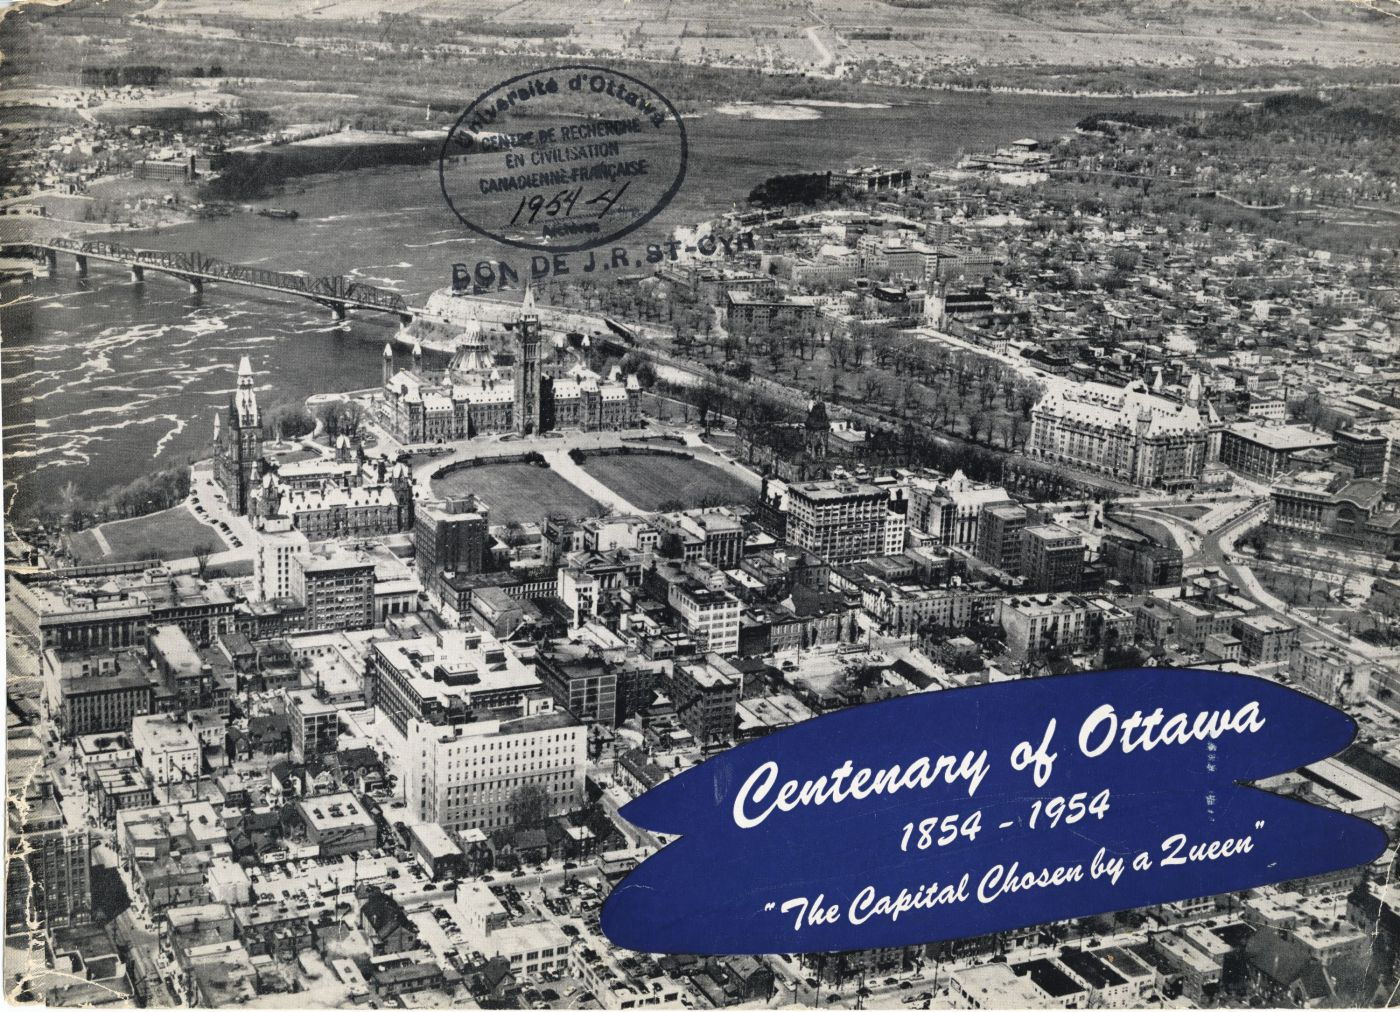 A black and white photograph showing a close-up aerial view of downtown Ottawa with the Parliament Buildings in the Centre. Text typewritten in English.